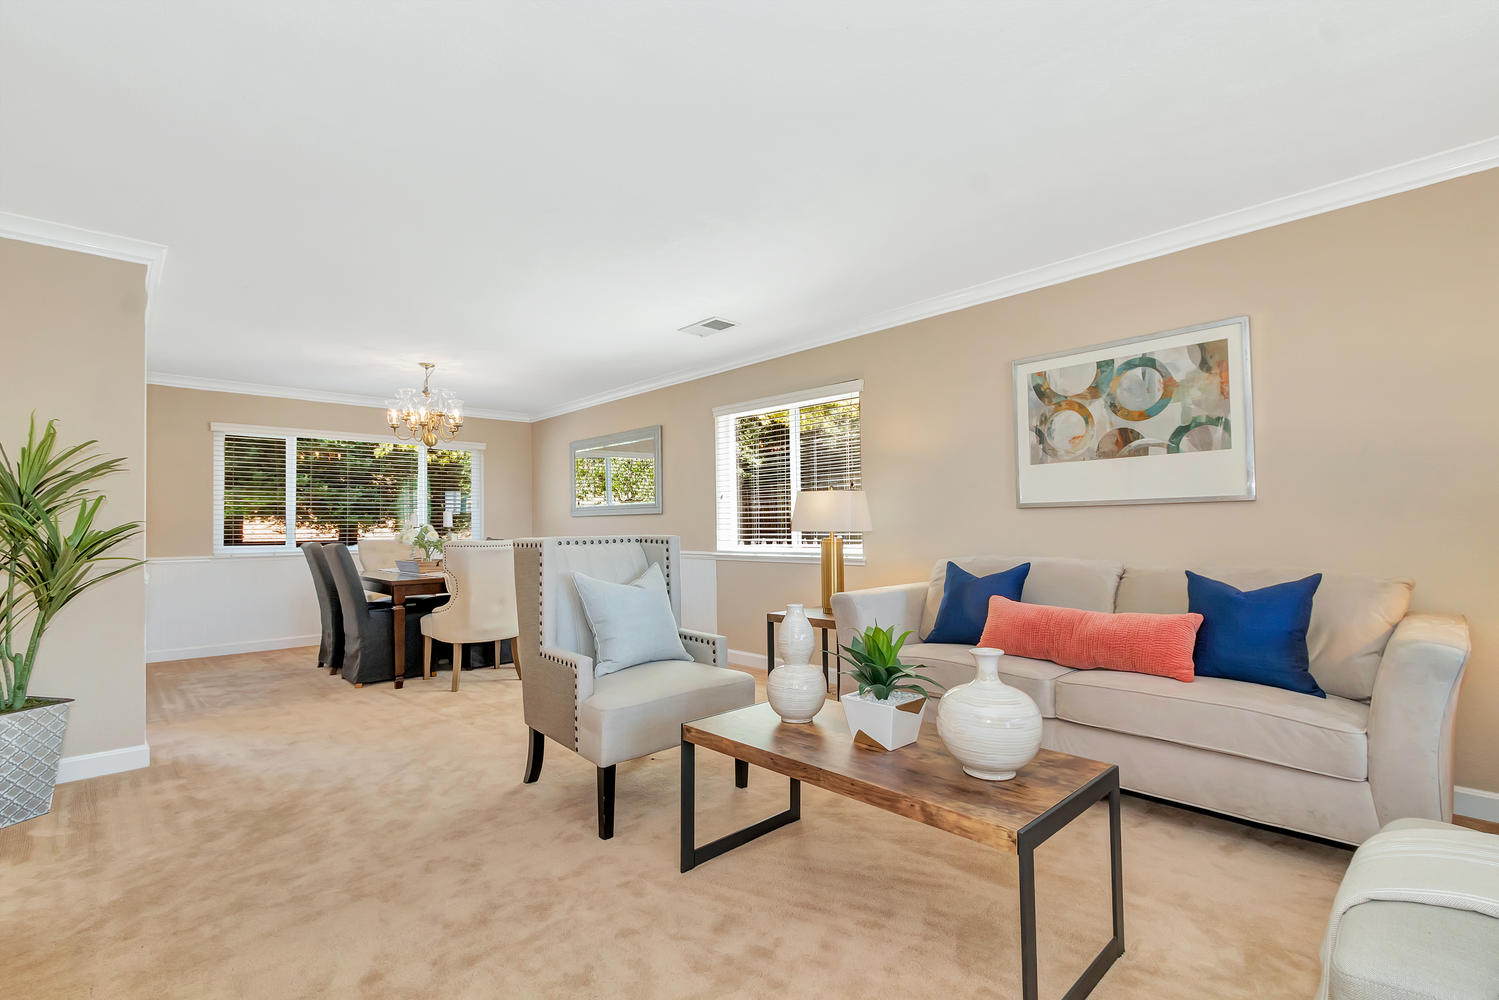 The sunken living room & dining room offer a quiet space to relax.